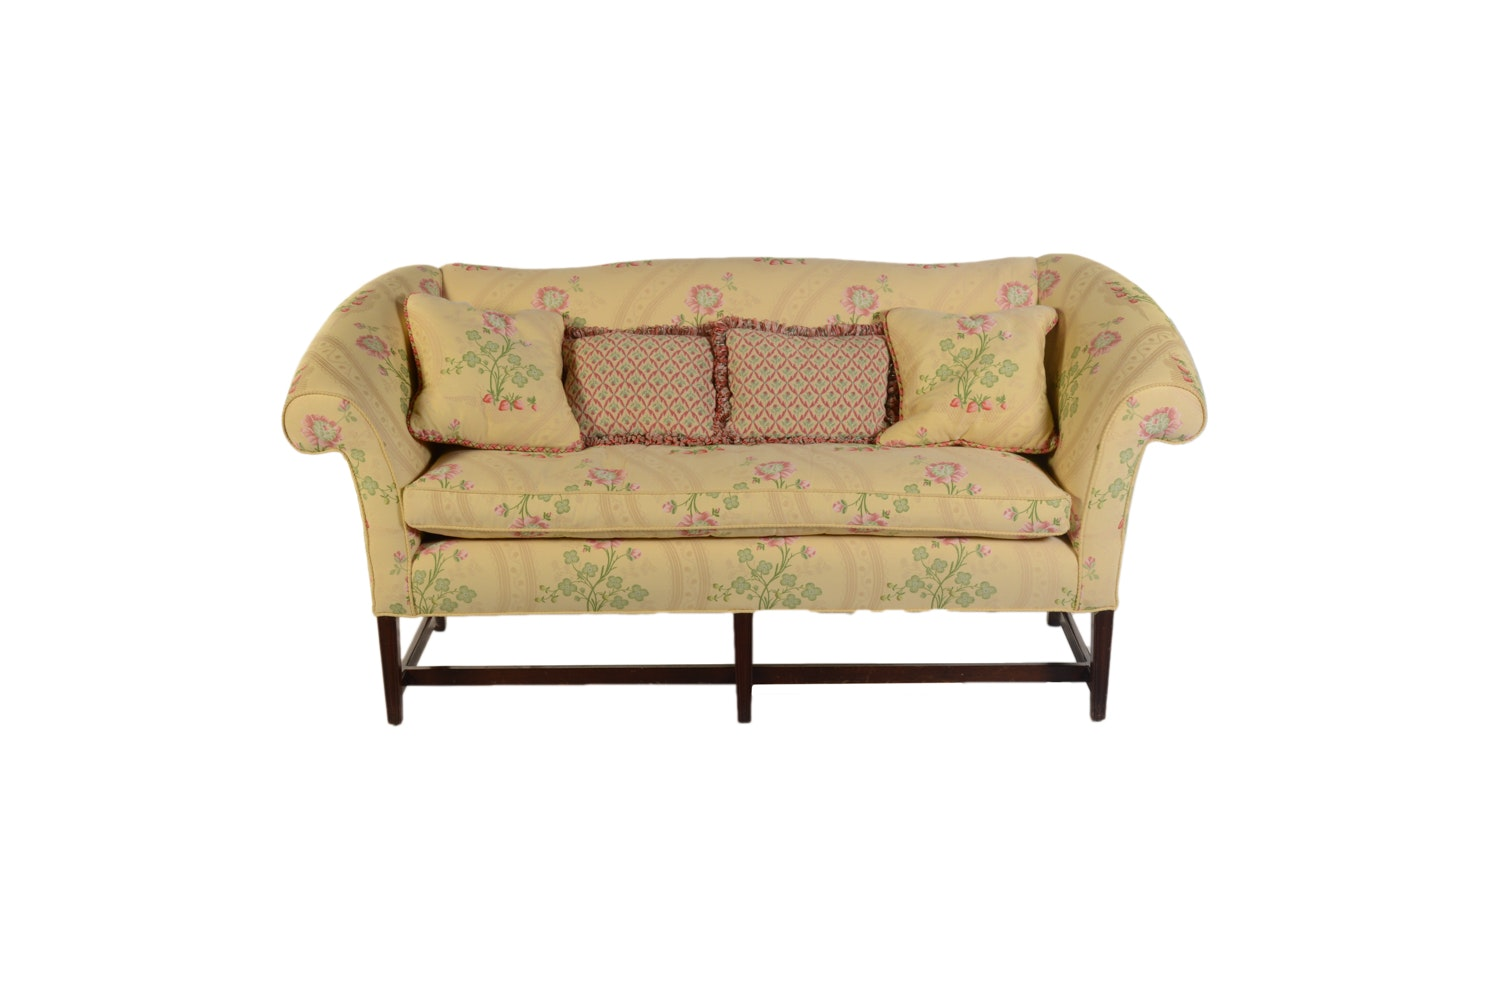 Floral Upholstered Settee by Scalamandre